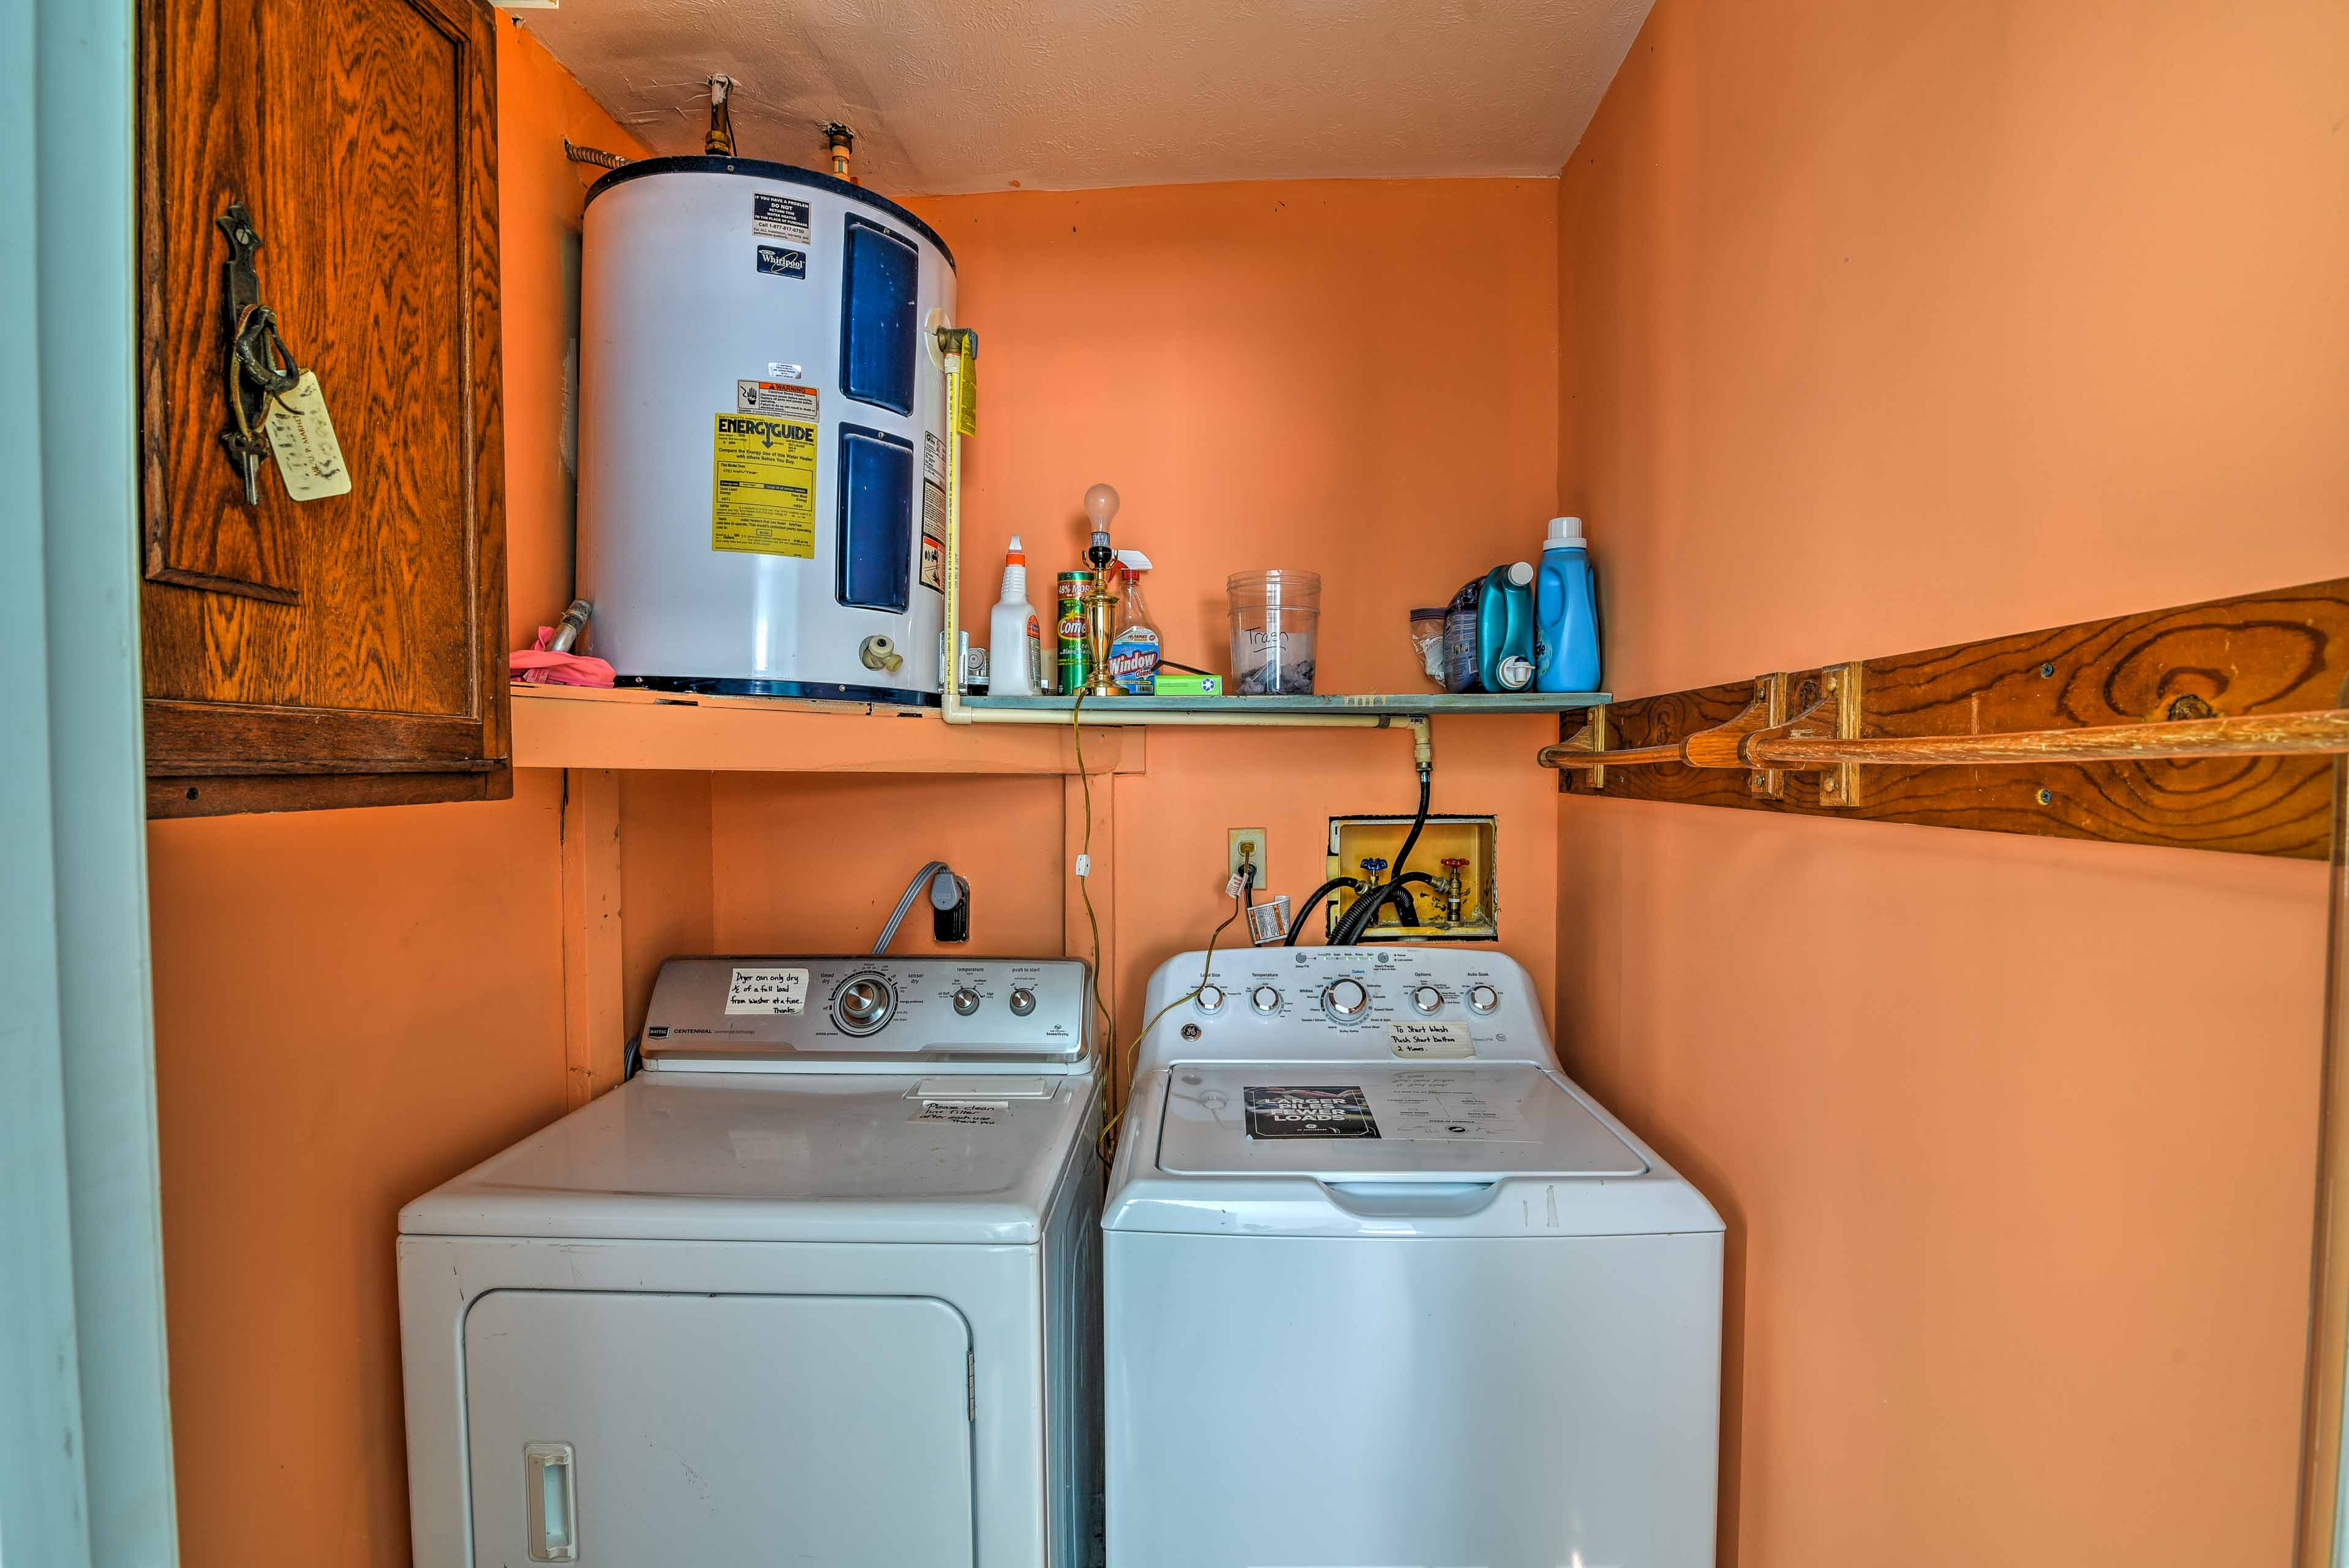 A washer and dryer are included for your added convenience.